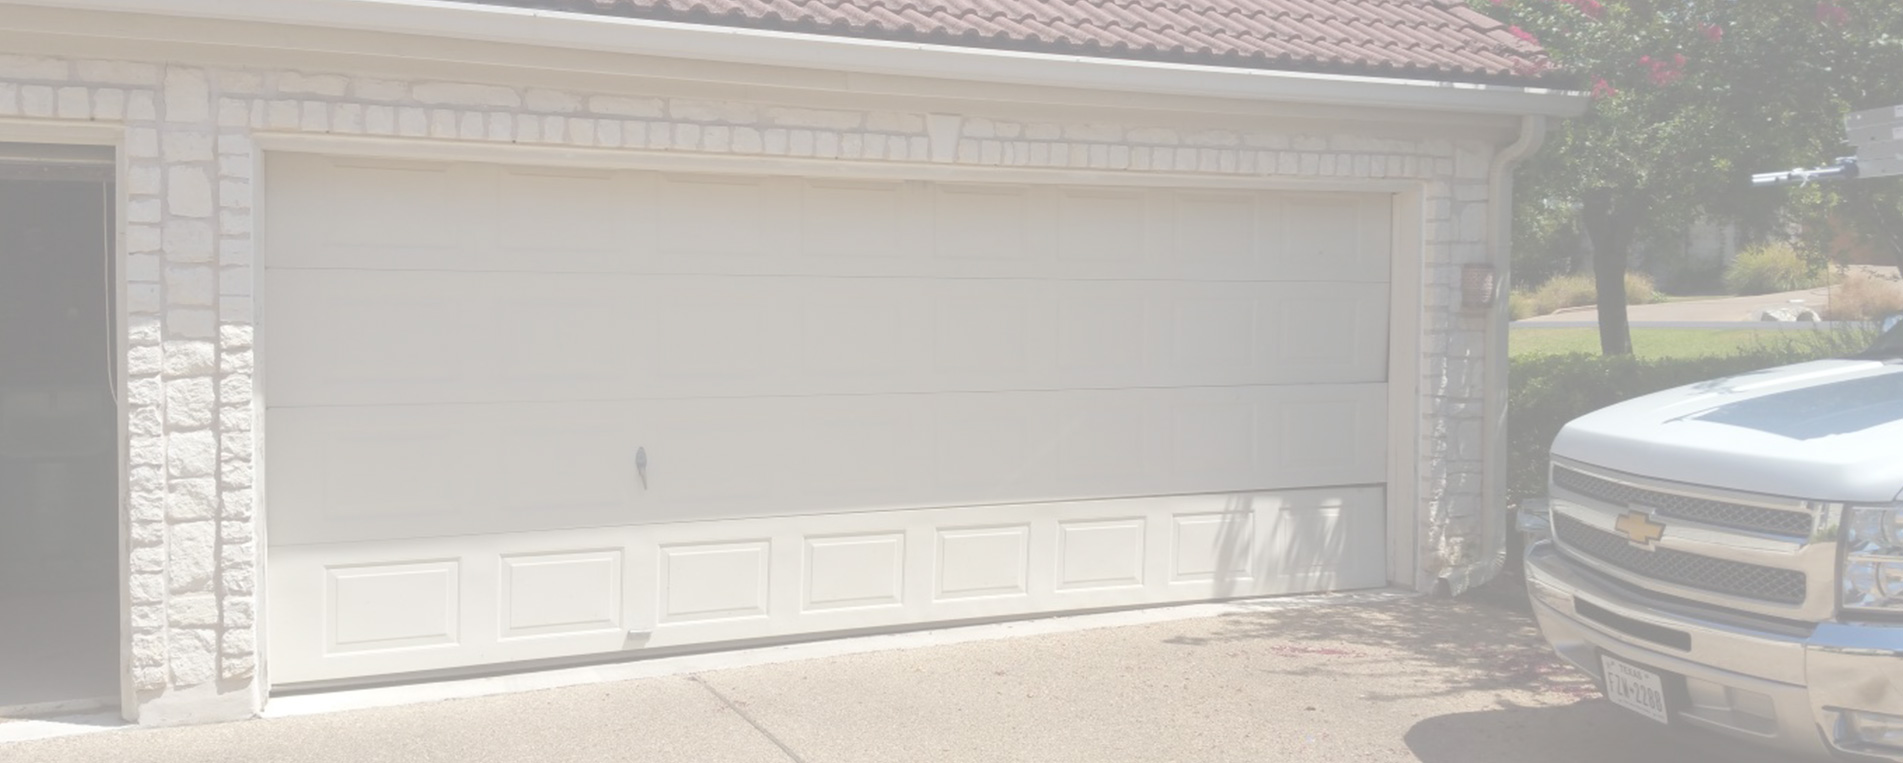 Bon Garage Door Repair Carlsbad, CA